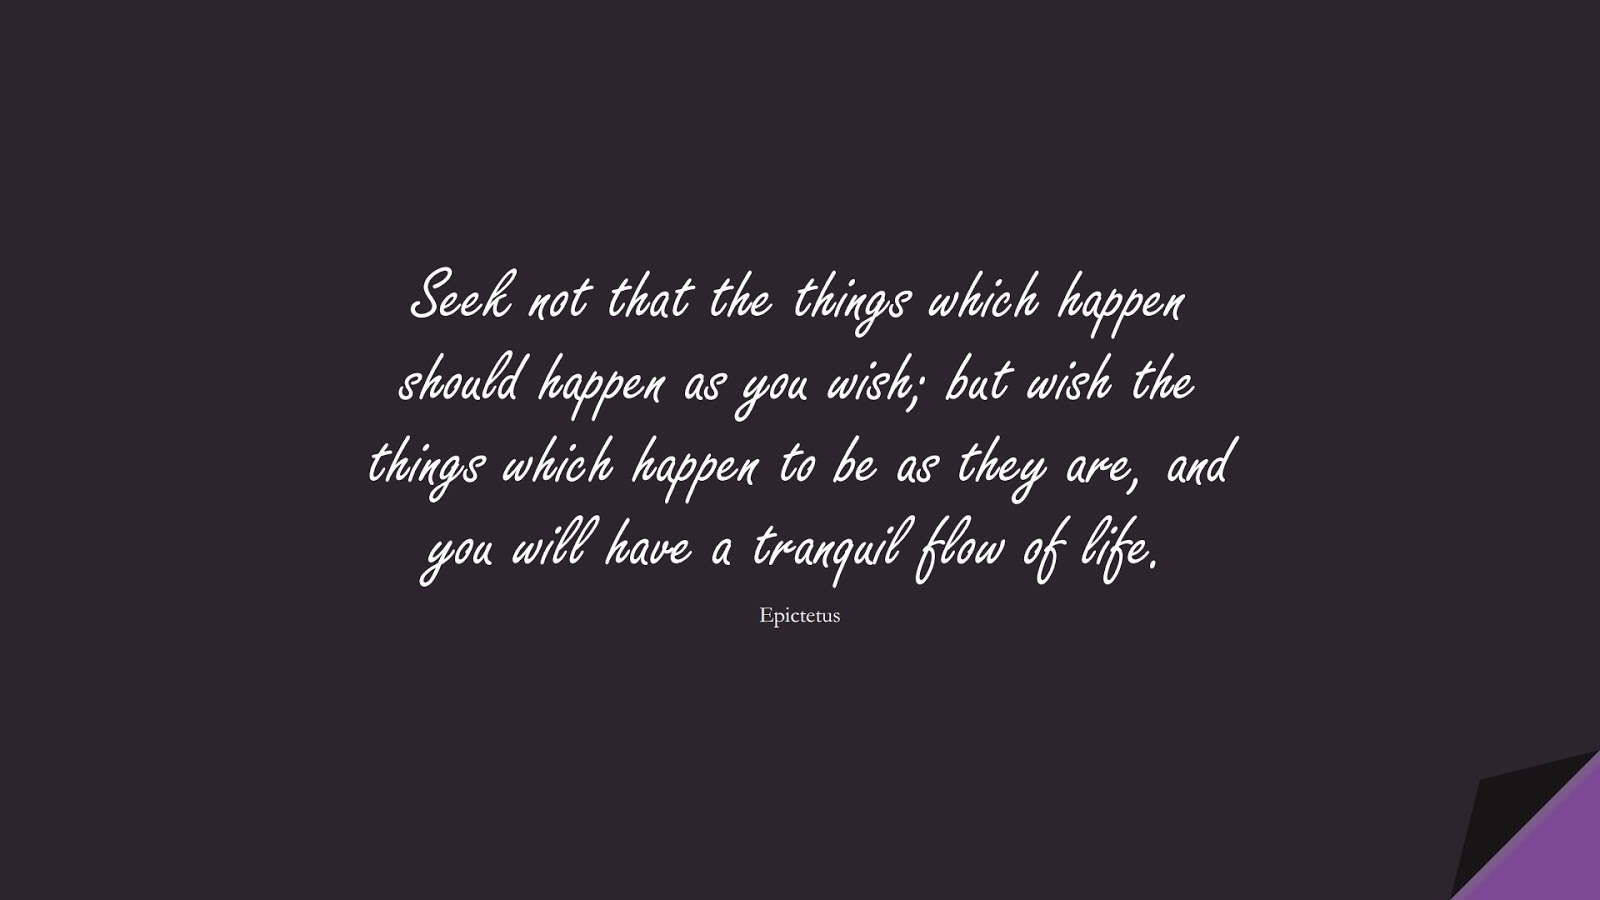 Seek not that the things which happen should happen as you wish; but wish the things which happen to be as they are, and you will have a tranquil flow of life. (Epictetus);  #CharacterQuotes